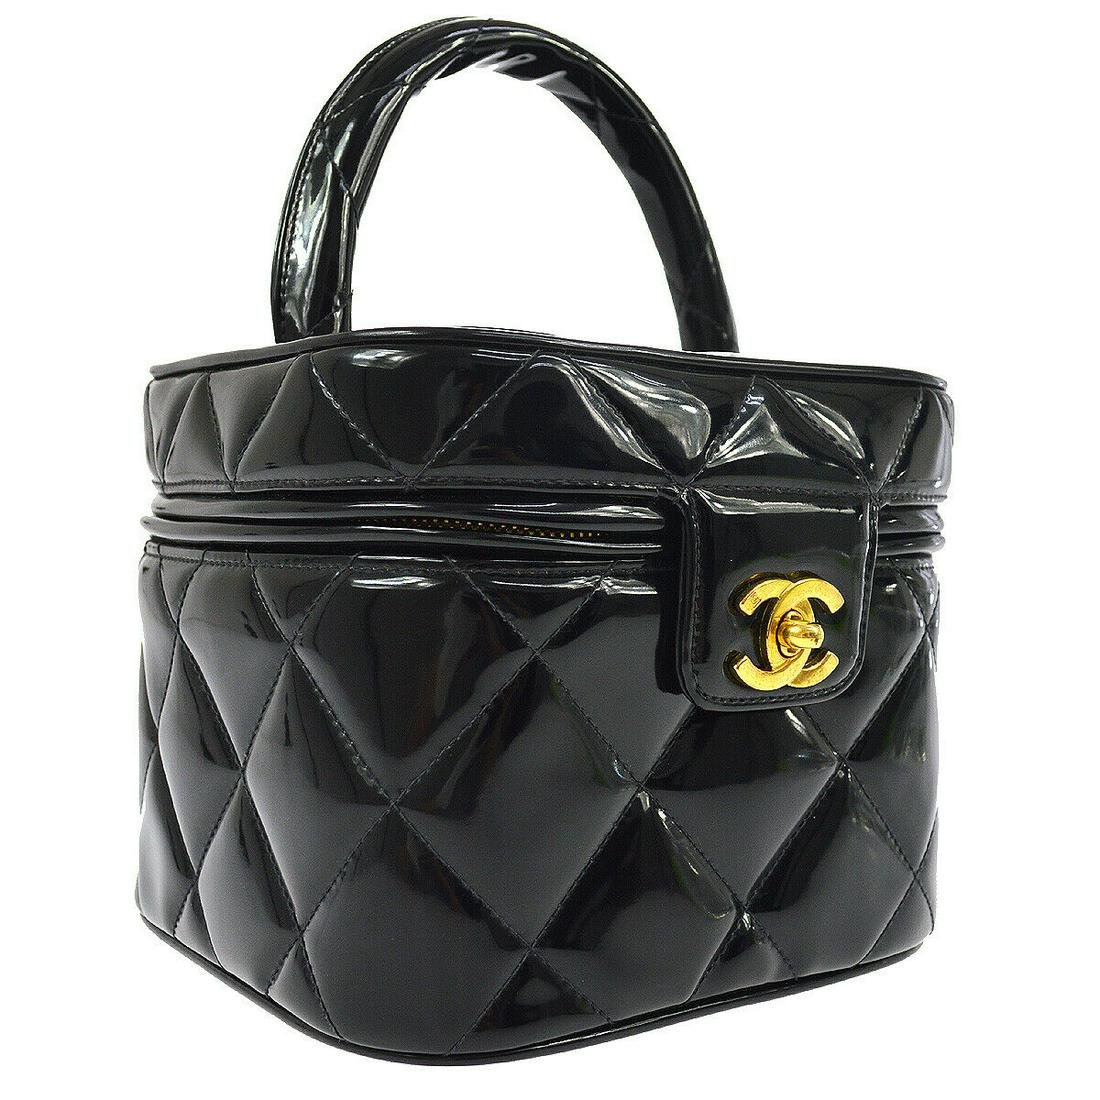 Authentic CHANEL Patent Leather Cosmetic Bag